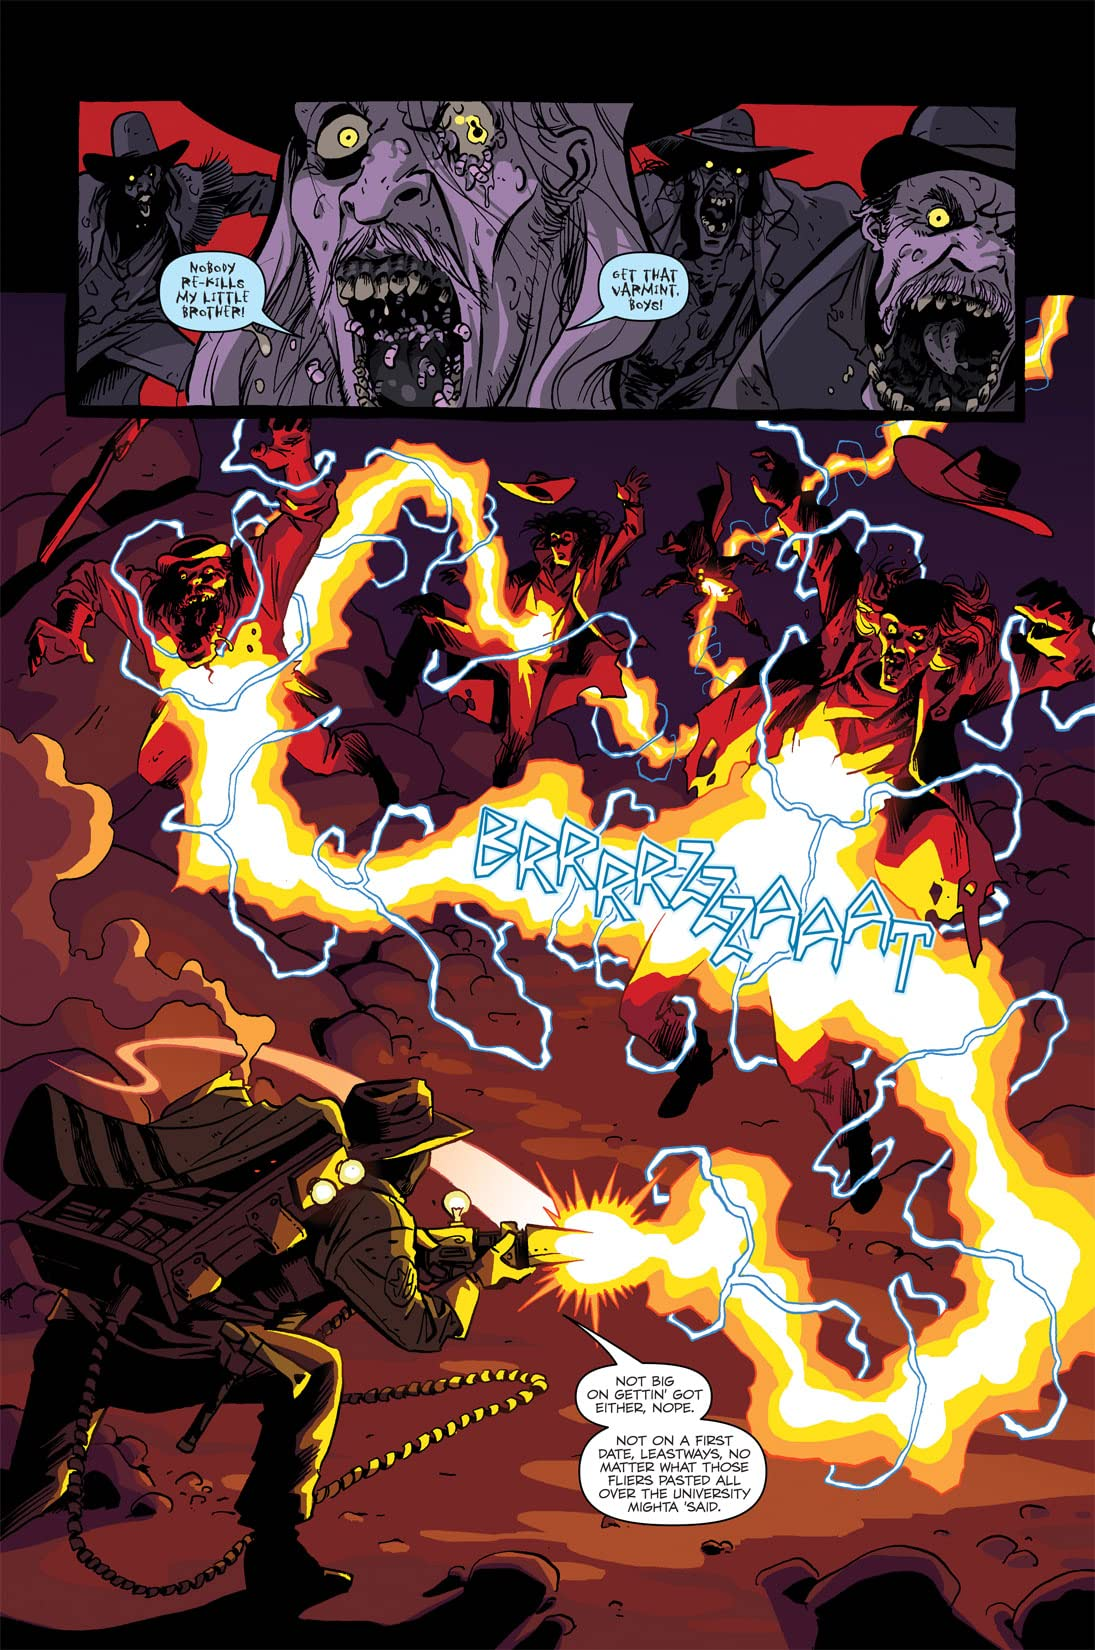 Ghostbusters: Displaced Aggression #1